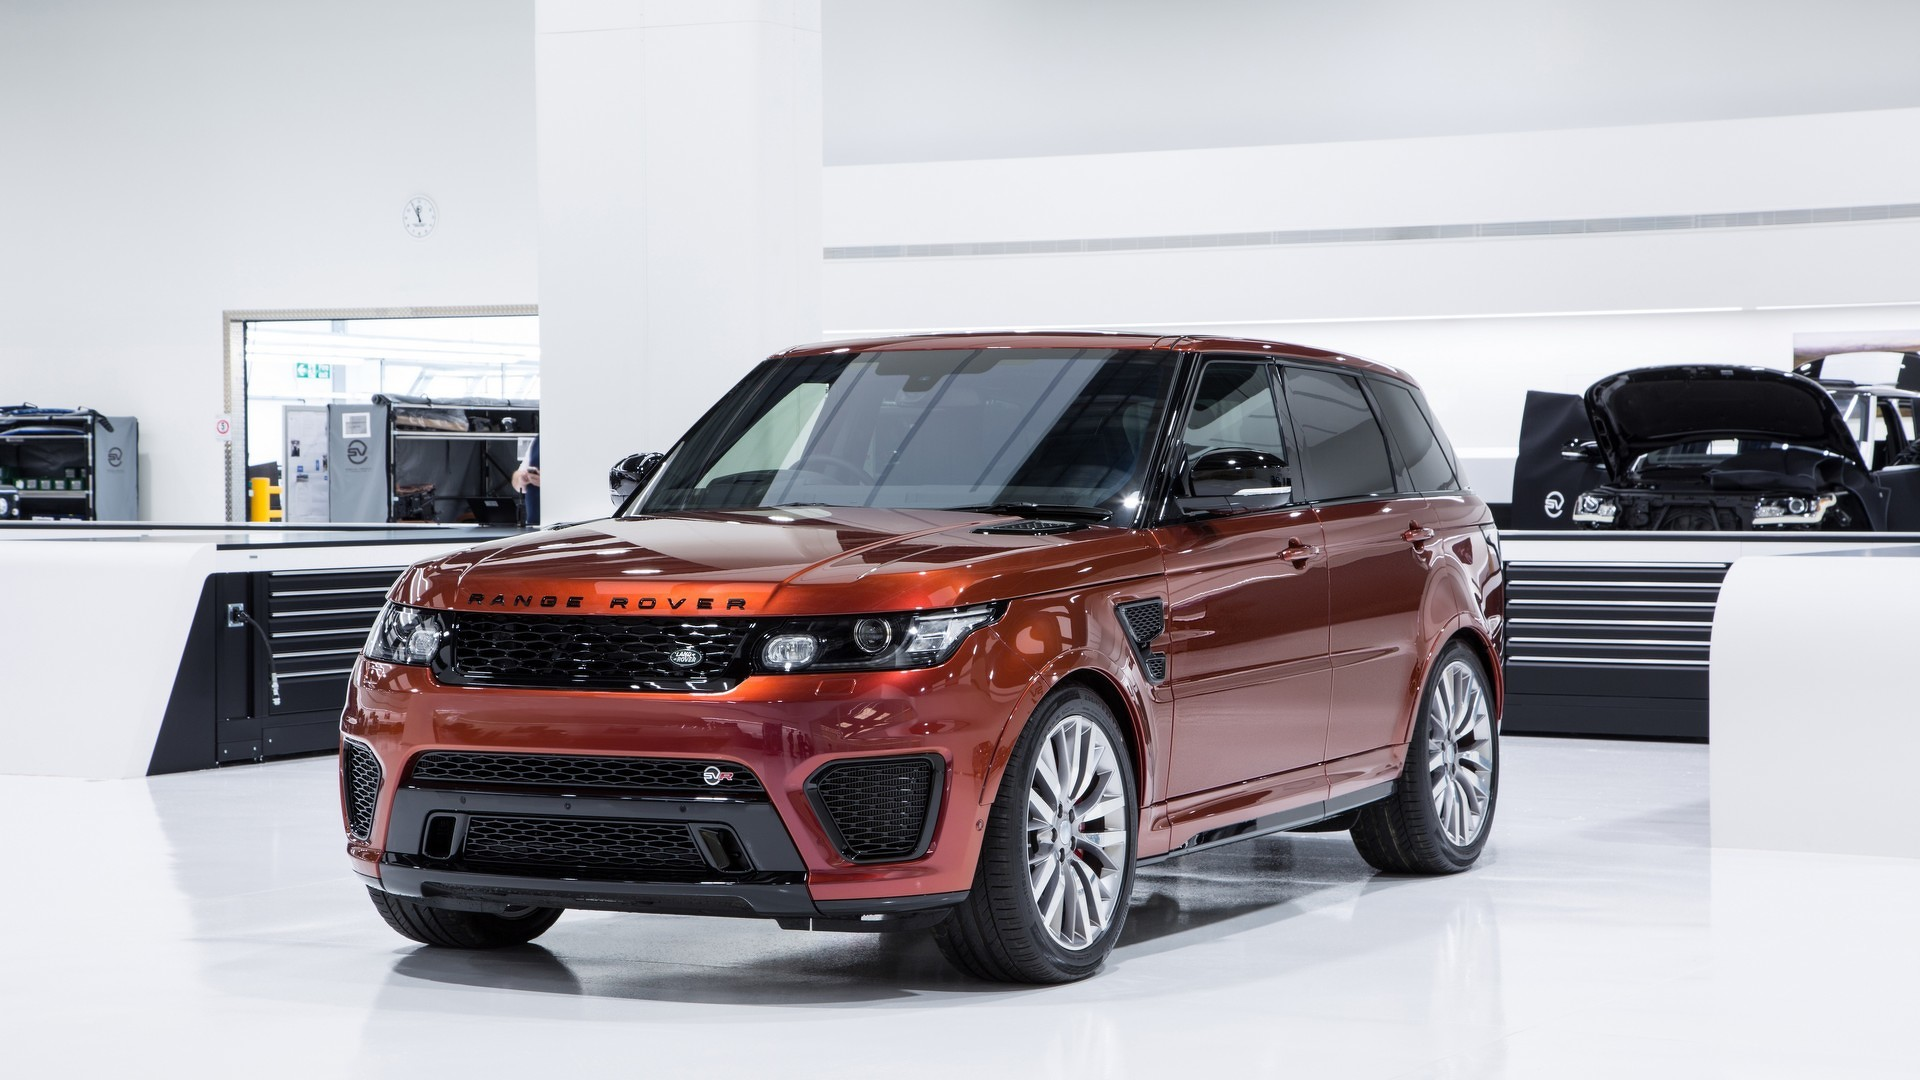 Land Rover Evoque Used >> Jaguar Land Rover to launch one new SVR model per year until 2020